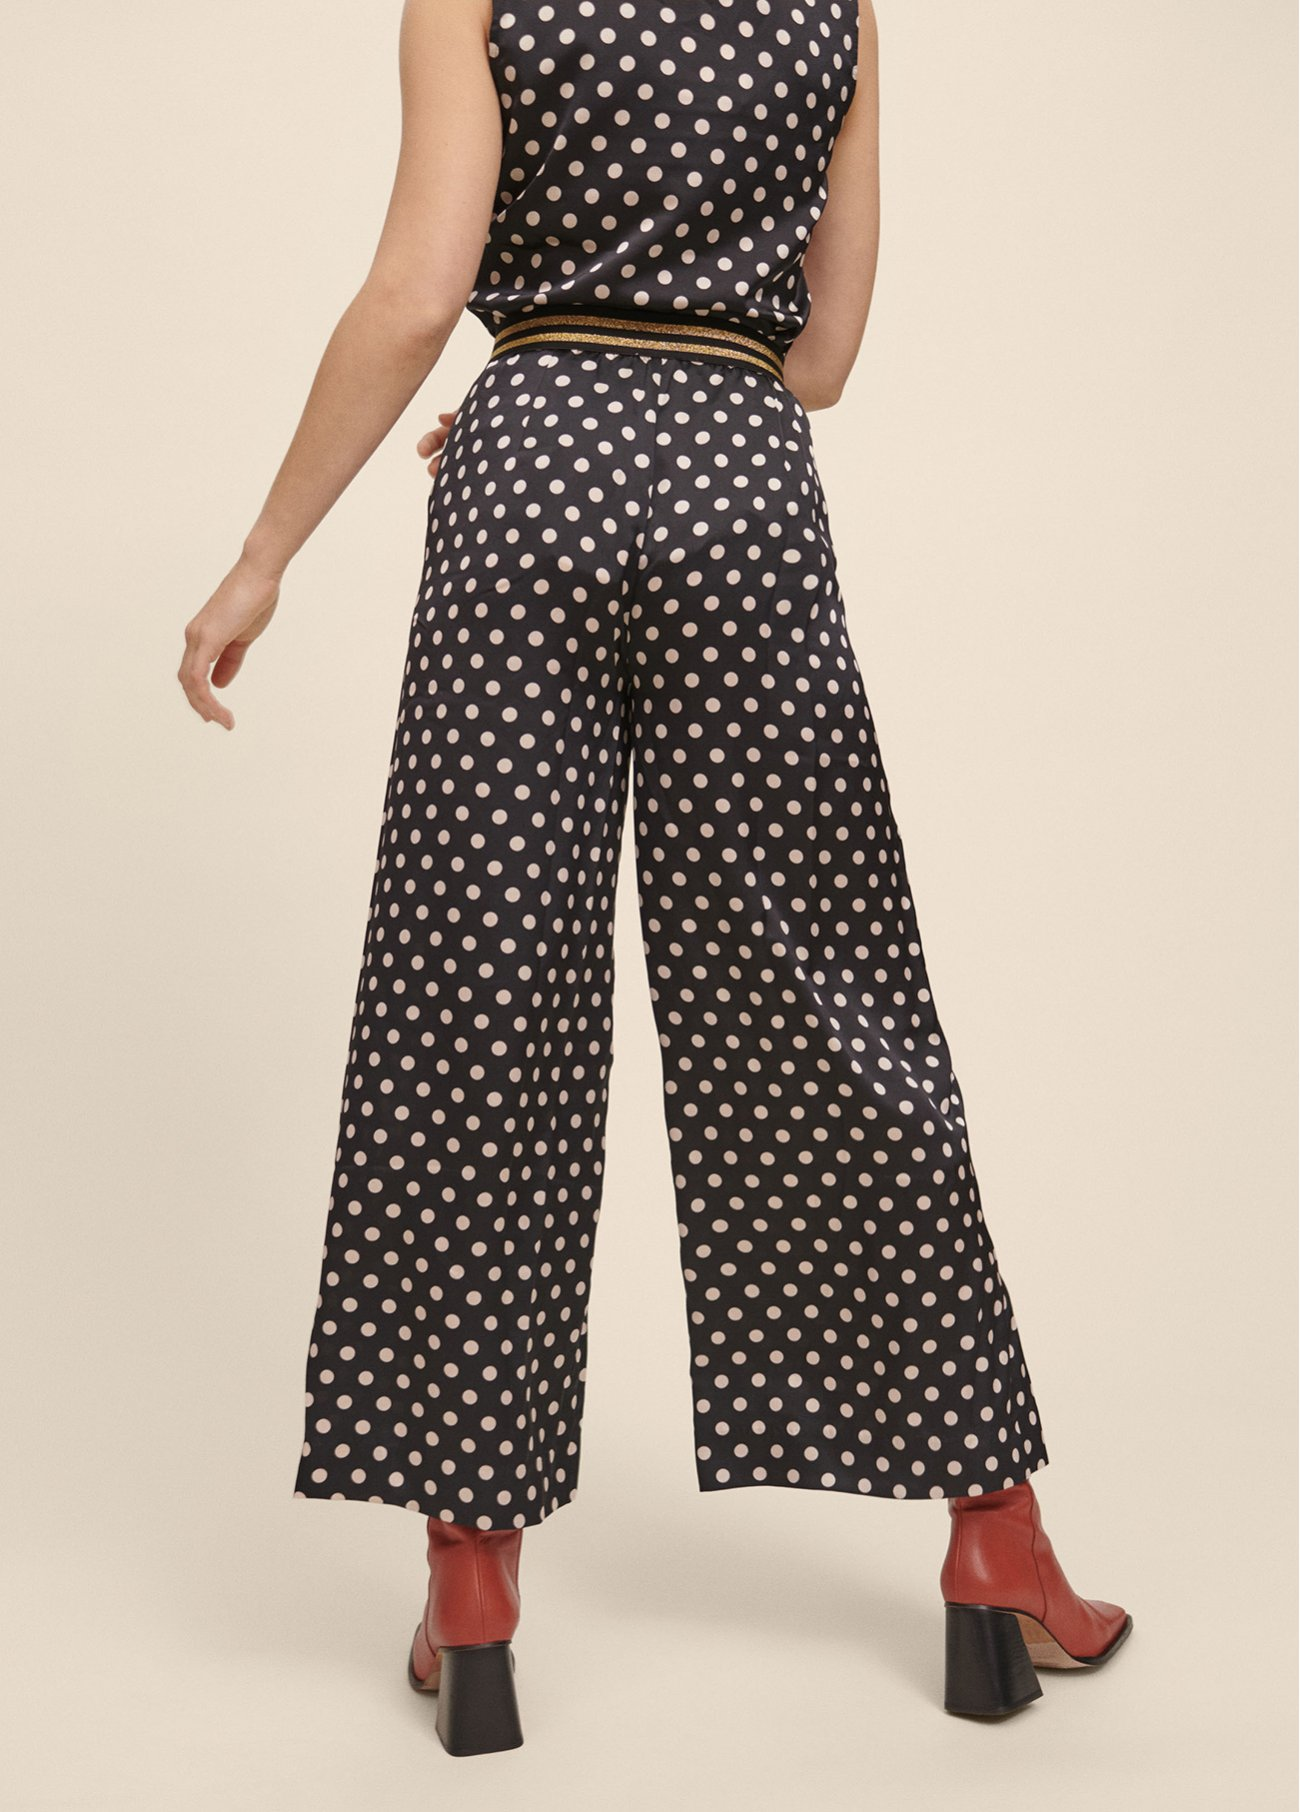 Two-tone polka dot flowing trousers